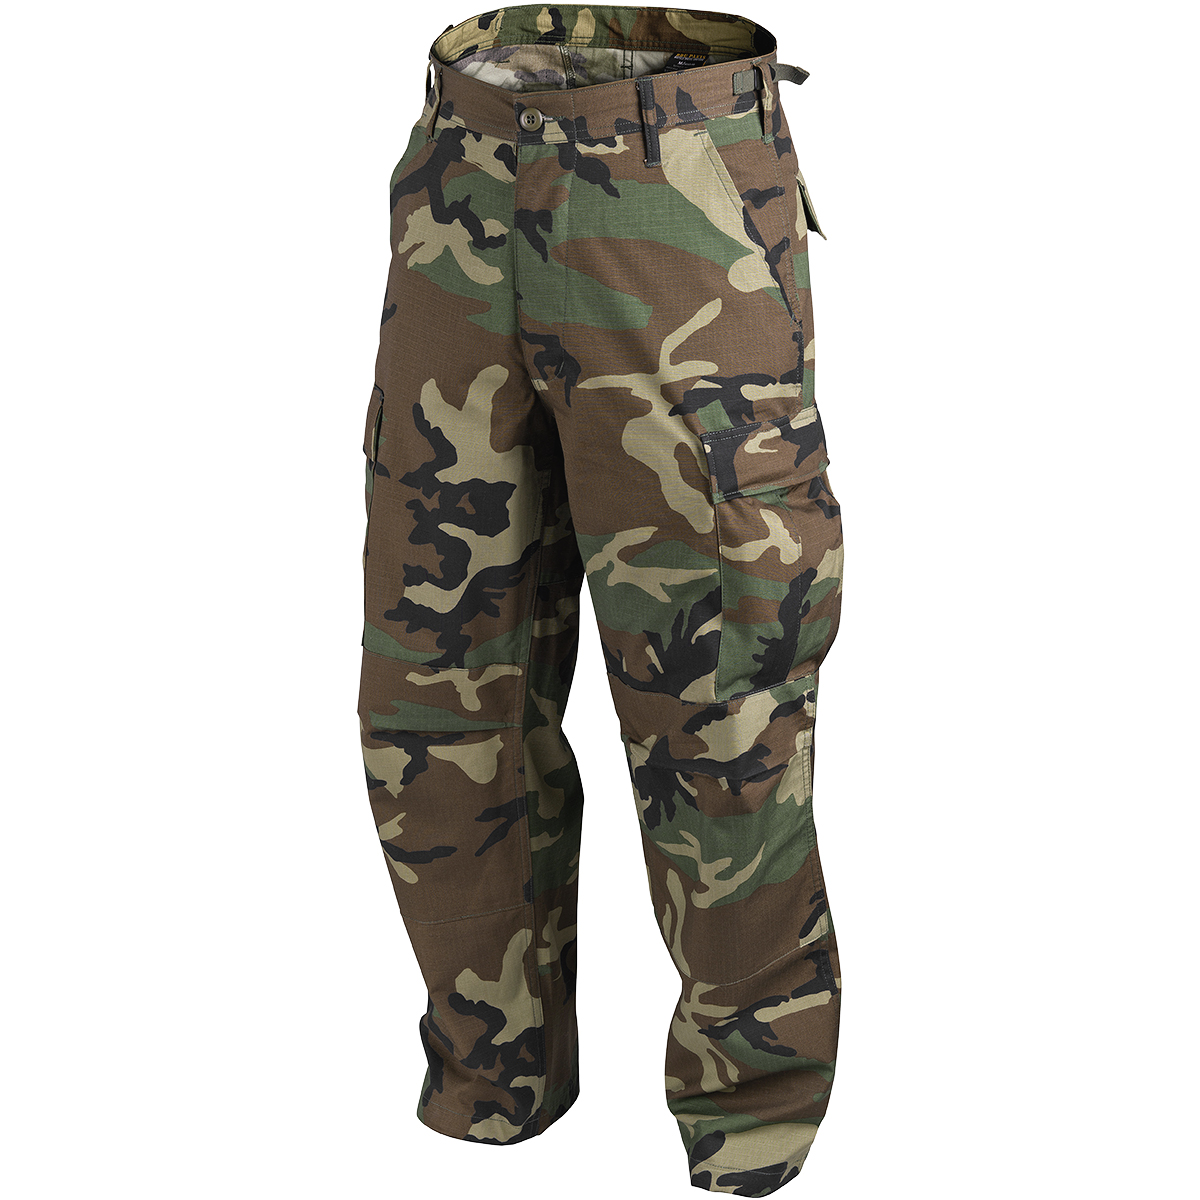 Mens Army Combat Work Trousers Pants Combats Cargo by WWK / WorkWear King Waist, Black) Find this Pin and more on Ausstattung by maskechristian@coolvloadx4.ga Christian Maske. These trousers are made from a highly durable Polyester/Cotton fabric.